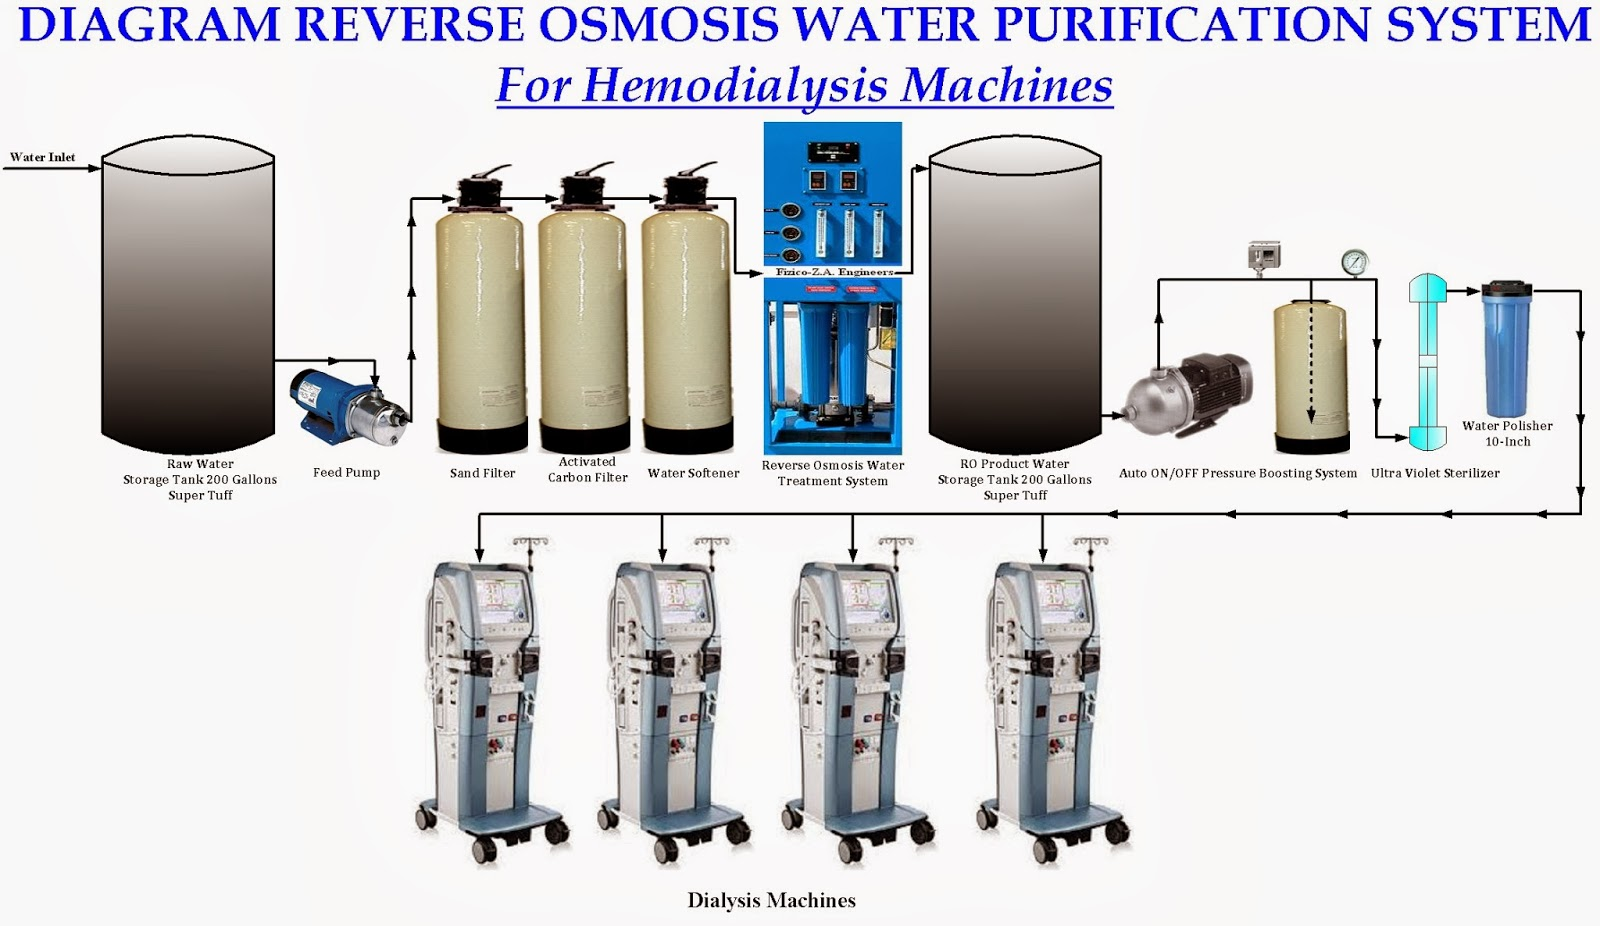 medium resolution of reverse osmosis water purification system for hemodialysis machines